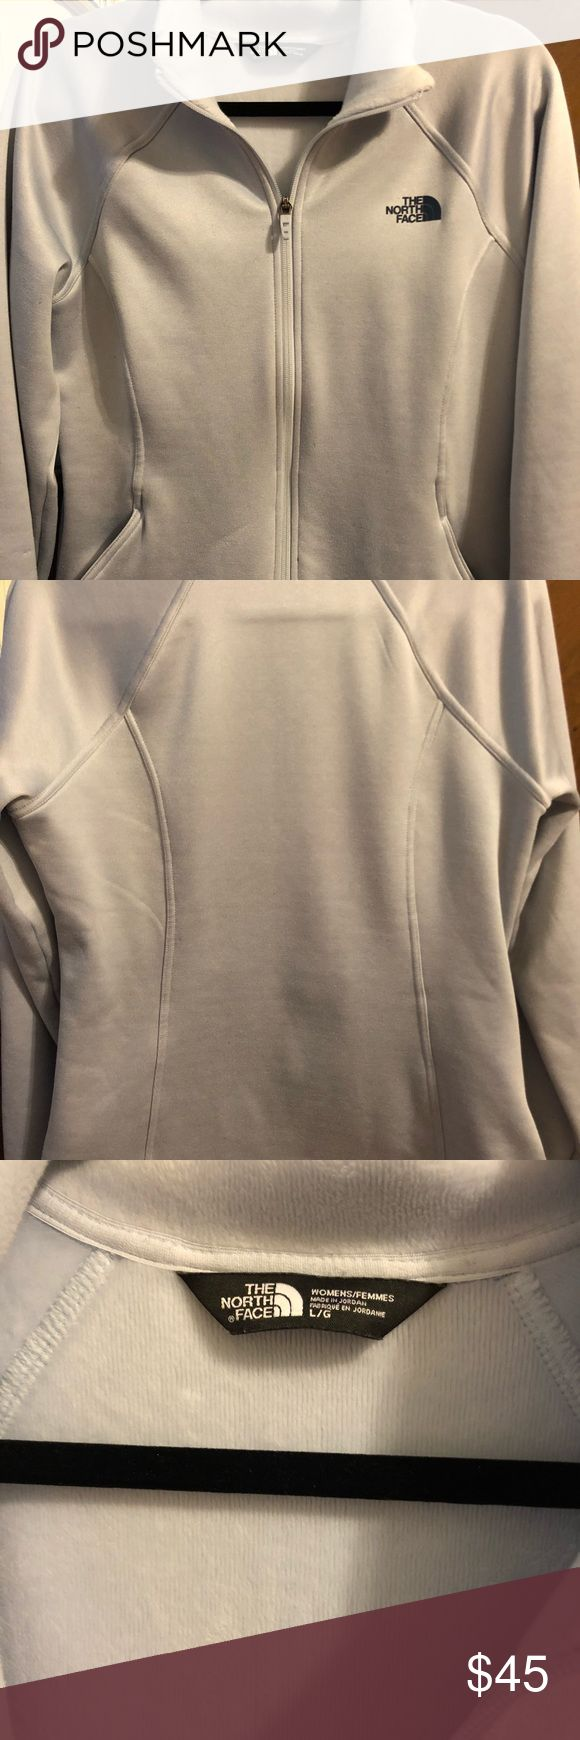 """Warm North Face Ladies' jacket -lovely jacket from The North Face -women's size L, grayish-blueish in color -warm and fuzzy on the inside 🤗 -smoke-free home -zip pockets -one small pick on the back side of sleeve {as shown in pic} -measures 21"""" across front underneath arms, zipped -measures 18"""" across front at waist, zipped  -measures 26"""" in length from shoulder to bottom The North Face Jackets & Coats"""